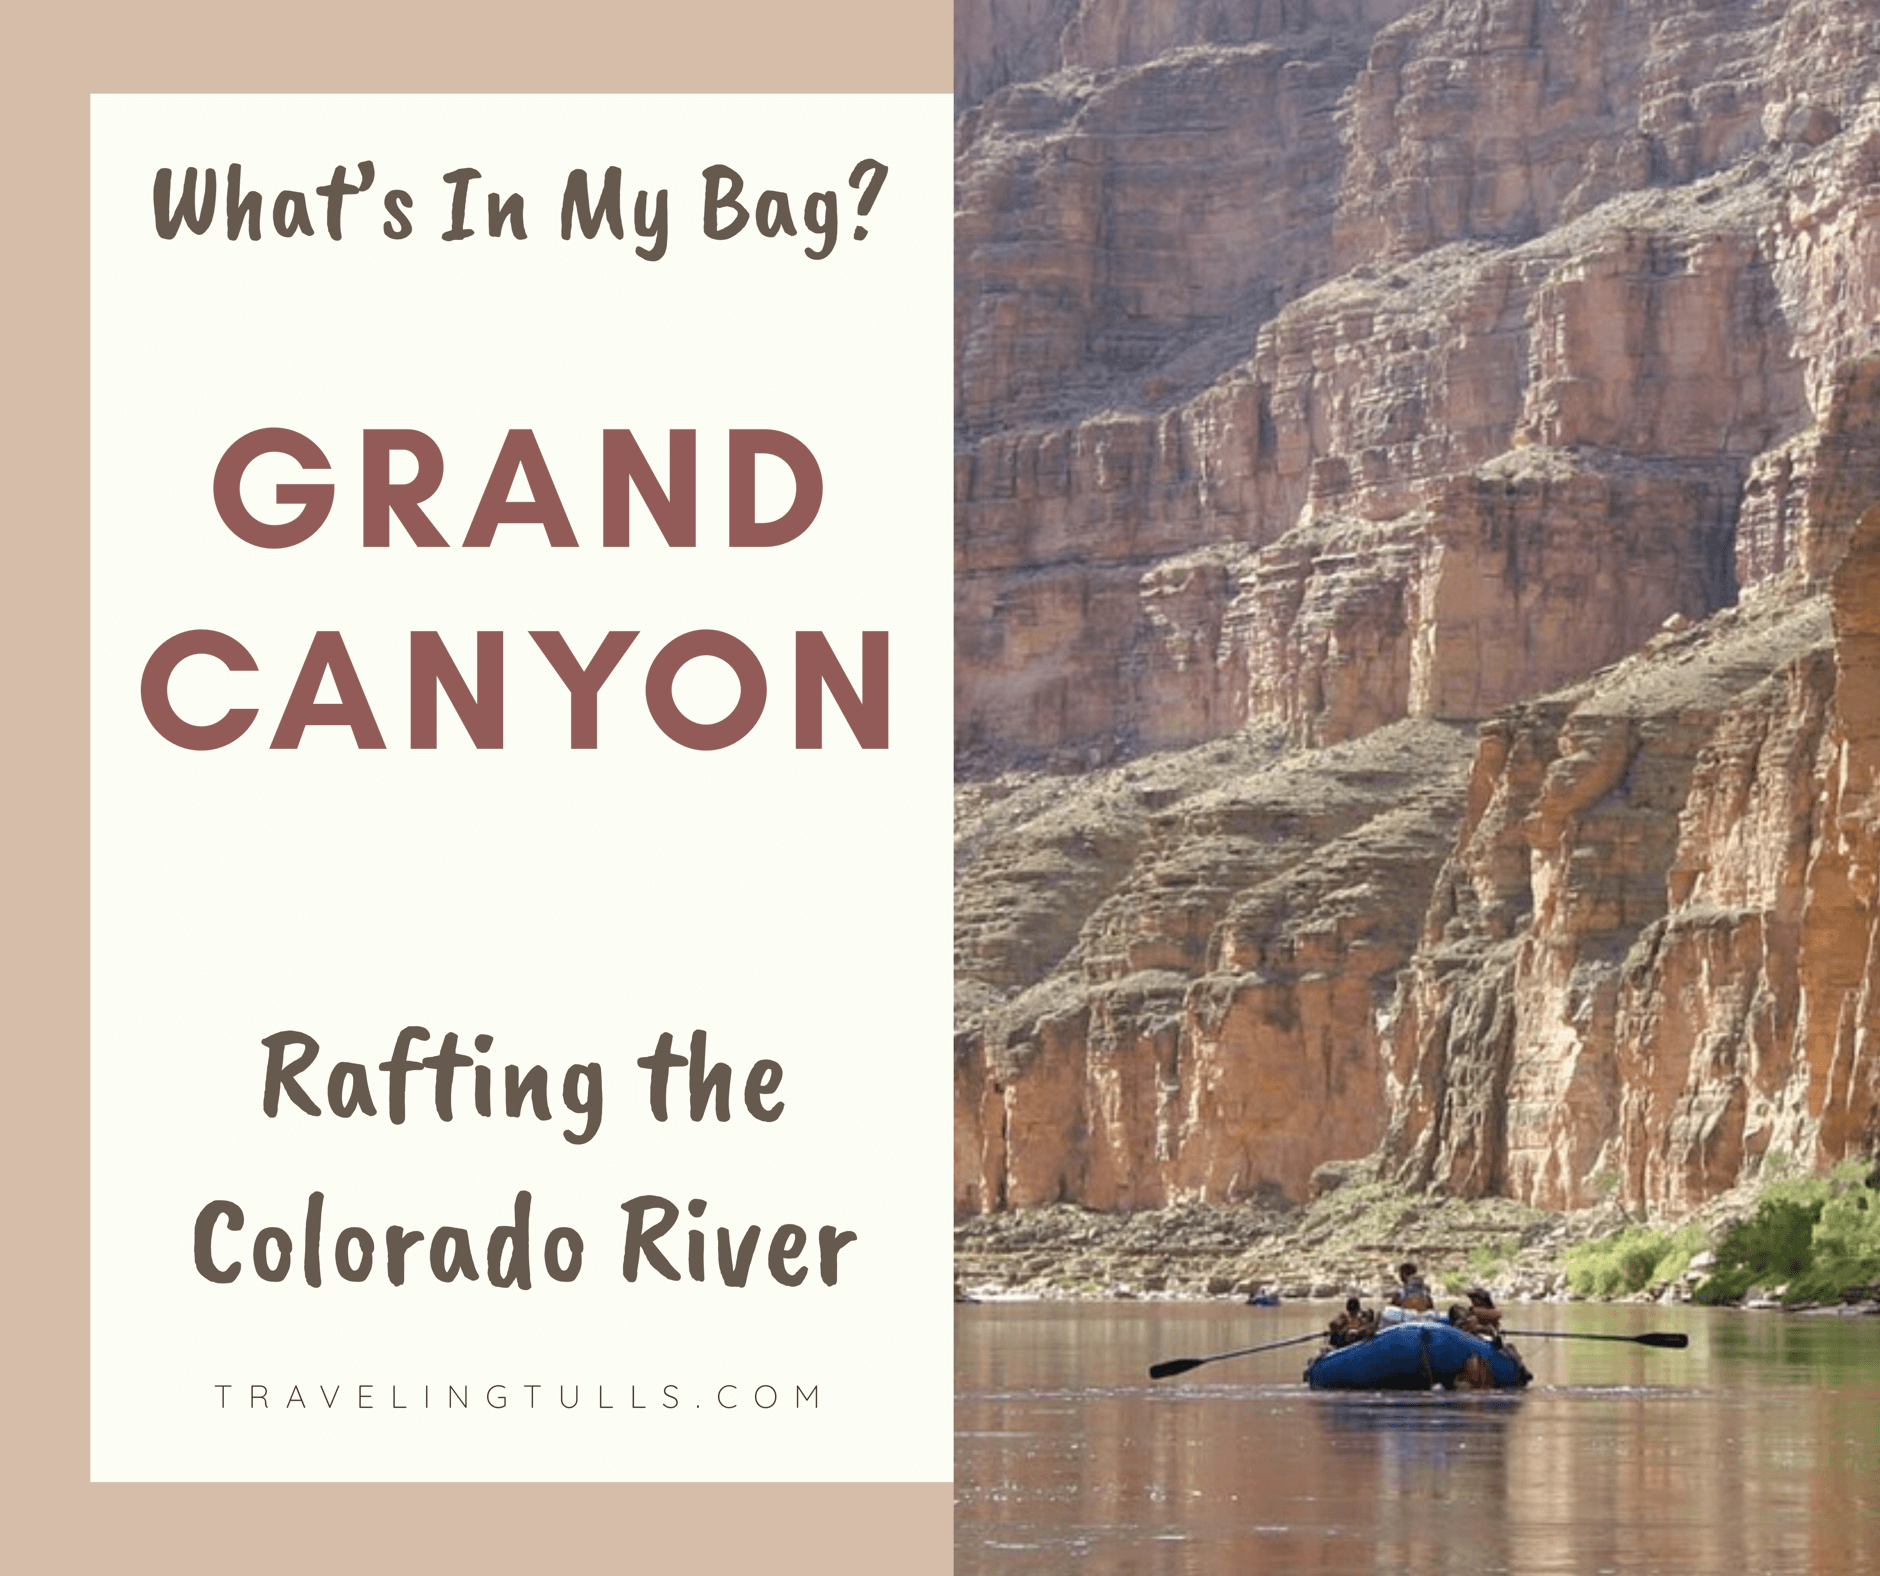 packing for a river rafting trip. What's in my bag